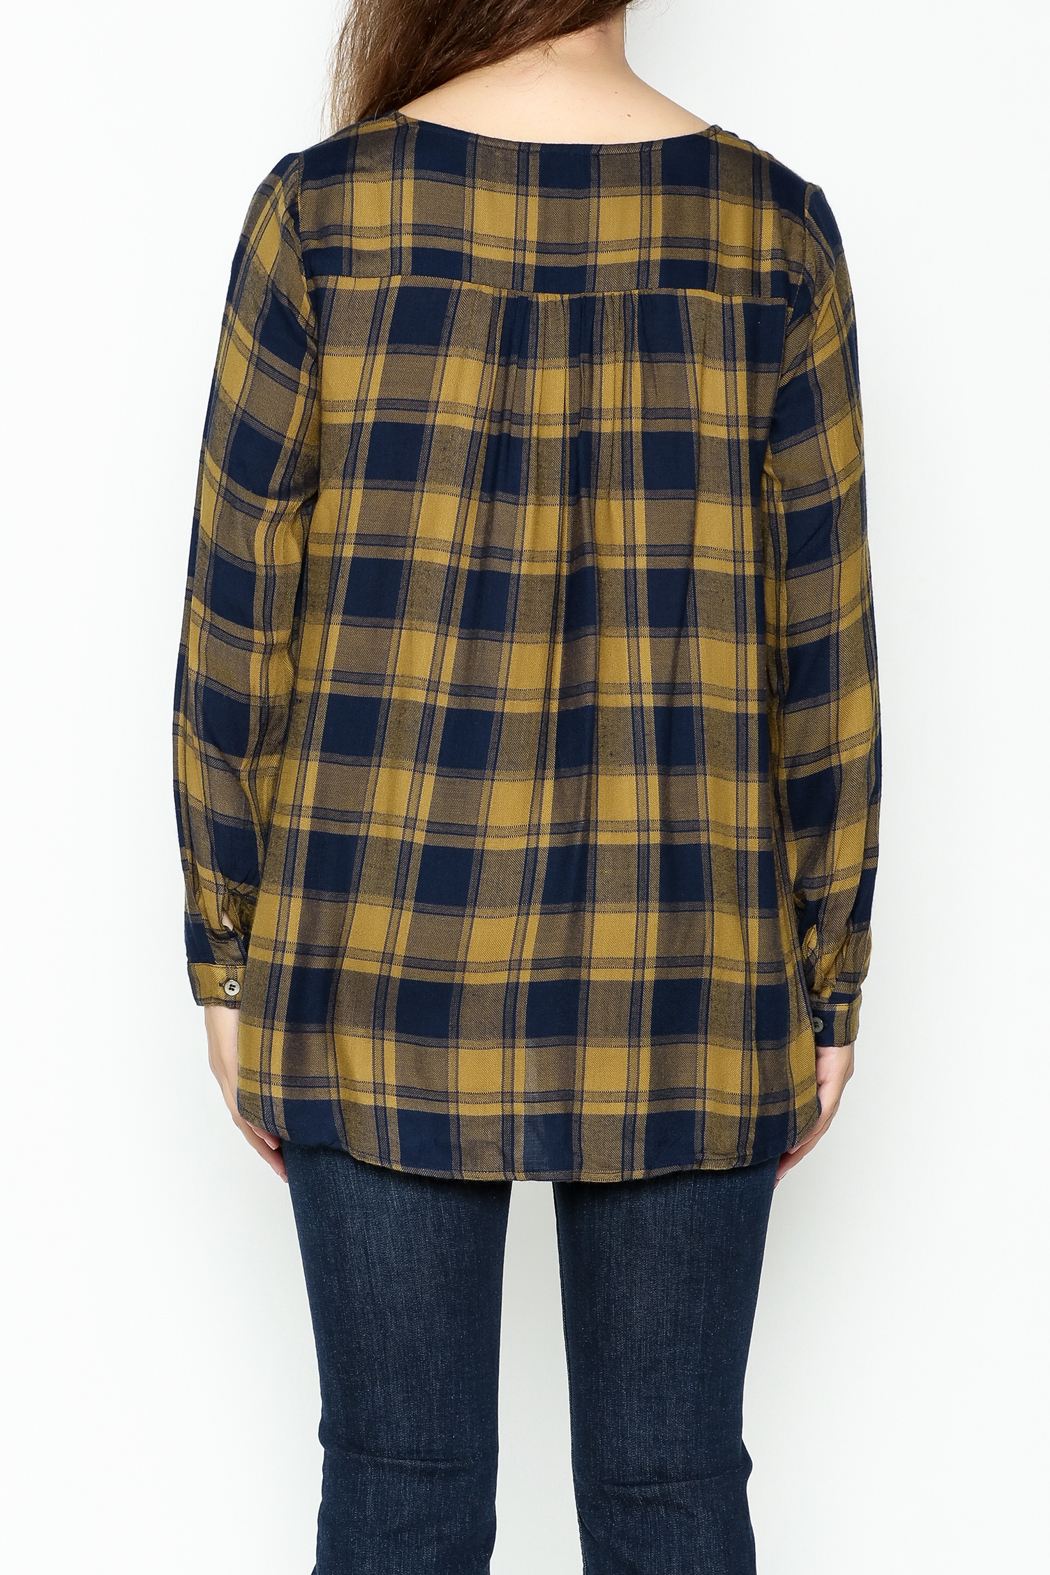 Mystree Lace Up Plaid Top - Back Cropped Image